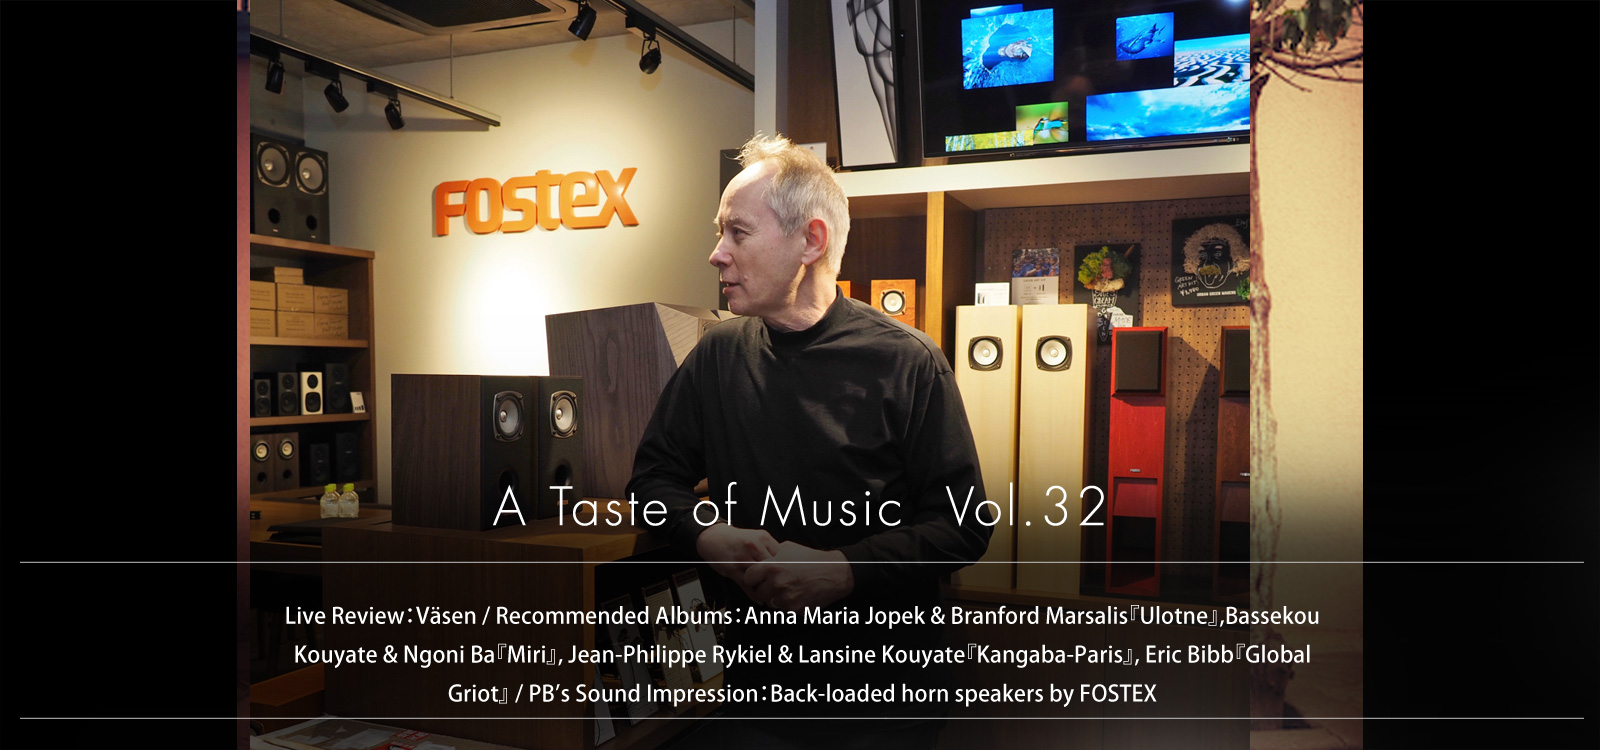 slider image A Taste of Music Vol.32